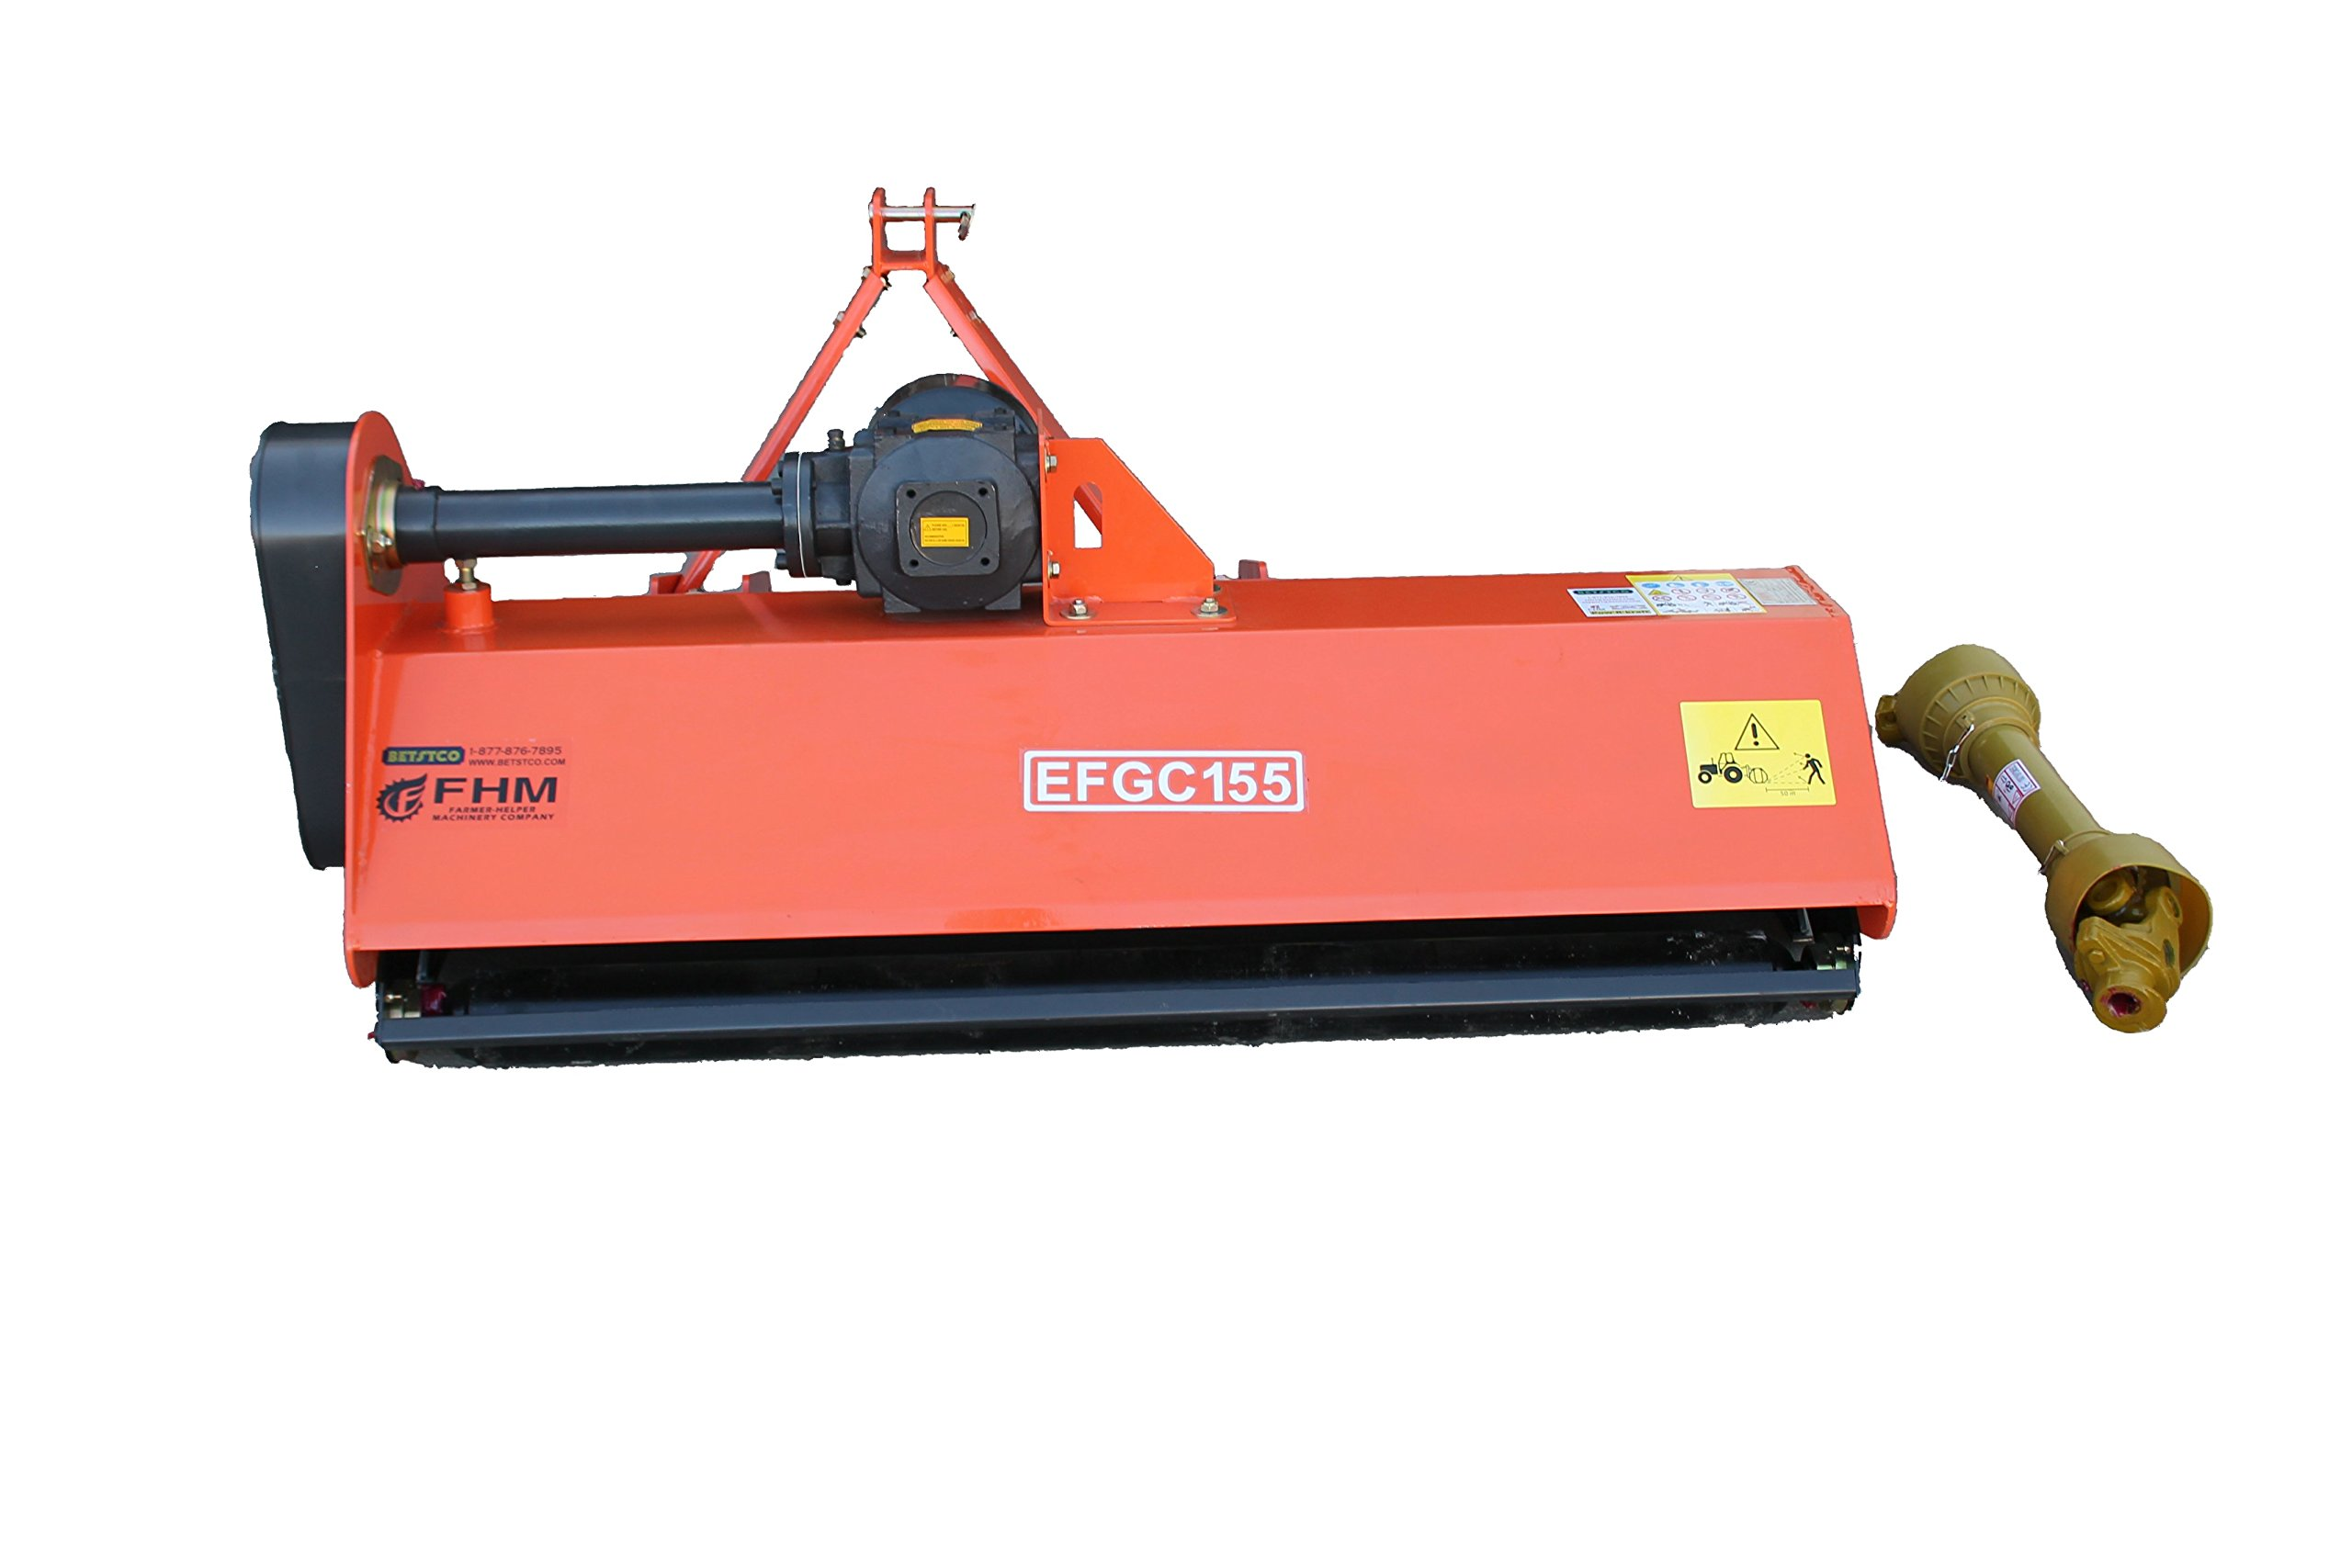 "Farmer Helper 60"" Heavy Duty Flail Mower Cat.I 3pt 25+HP Rating (FH-EFGC155)"